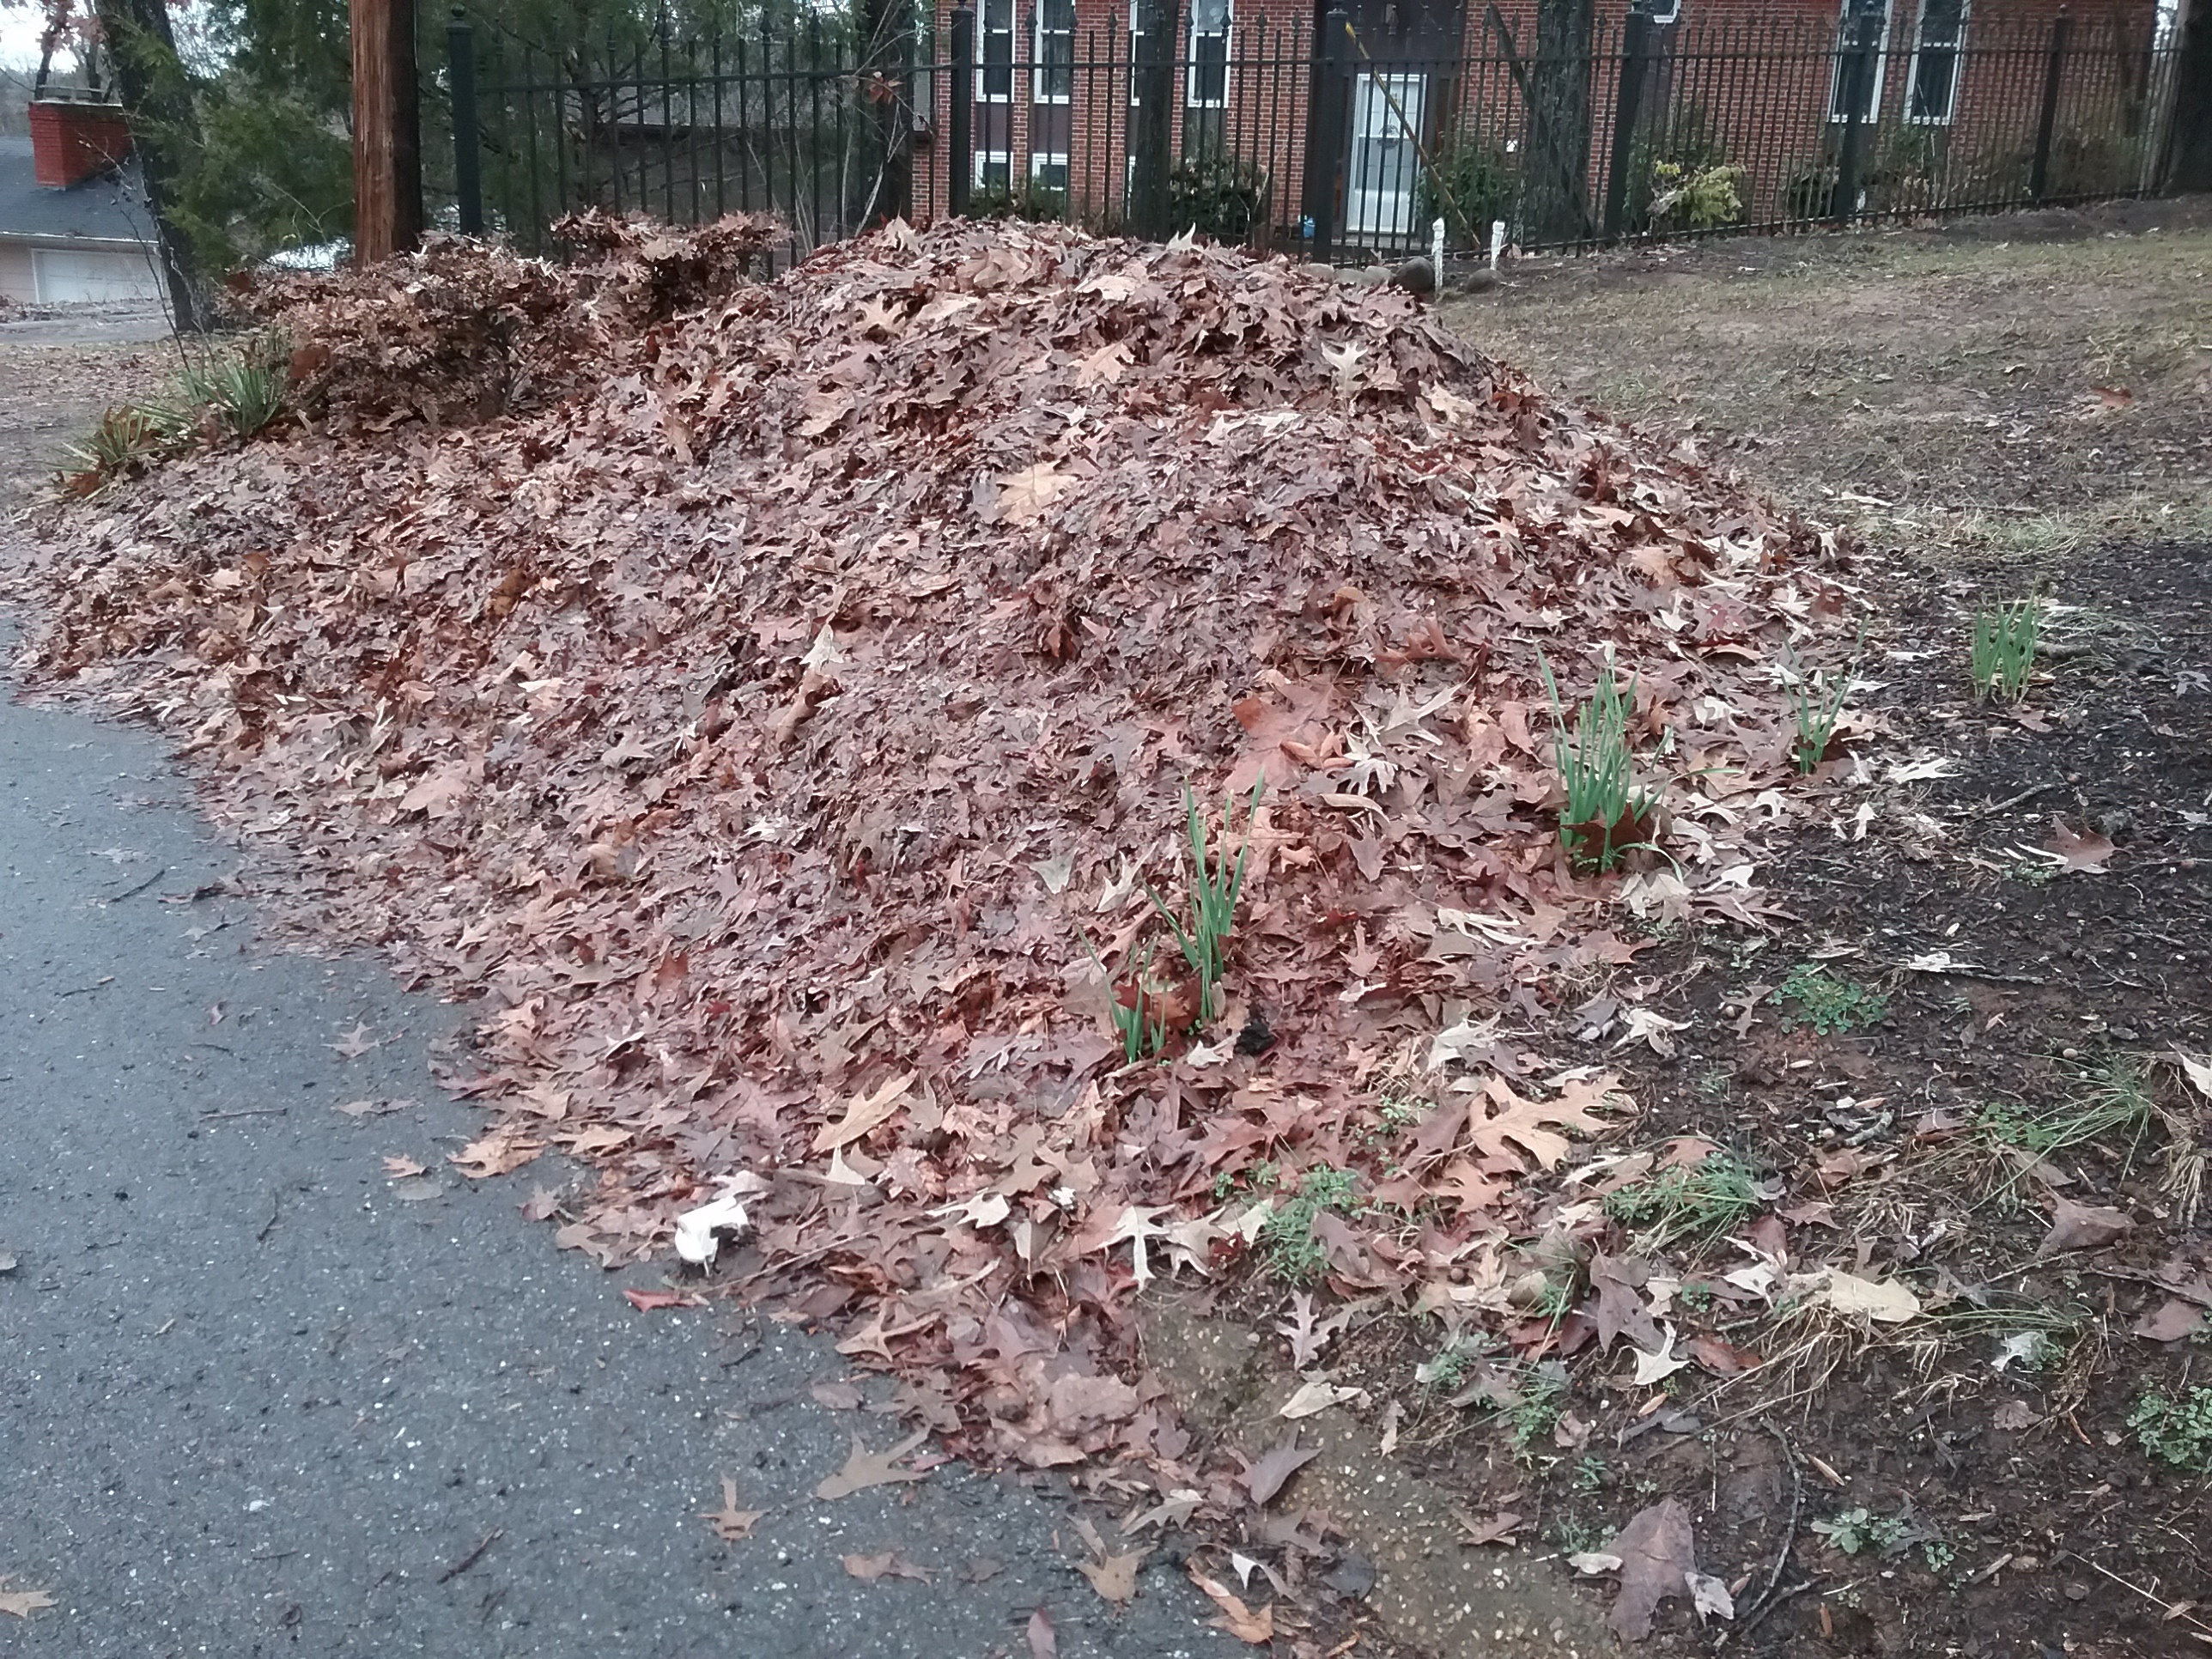 Shredded Leaves down at the street